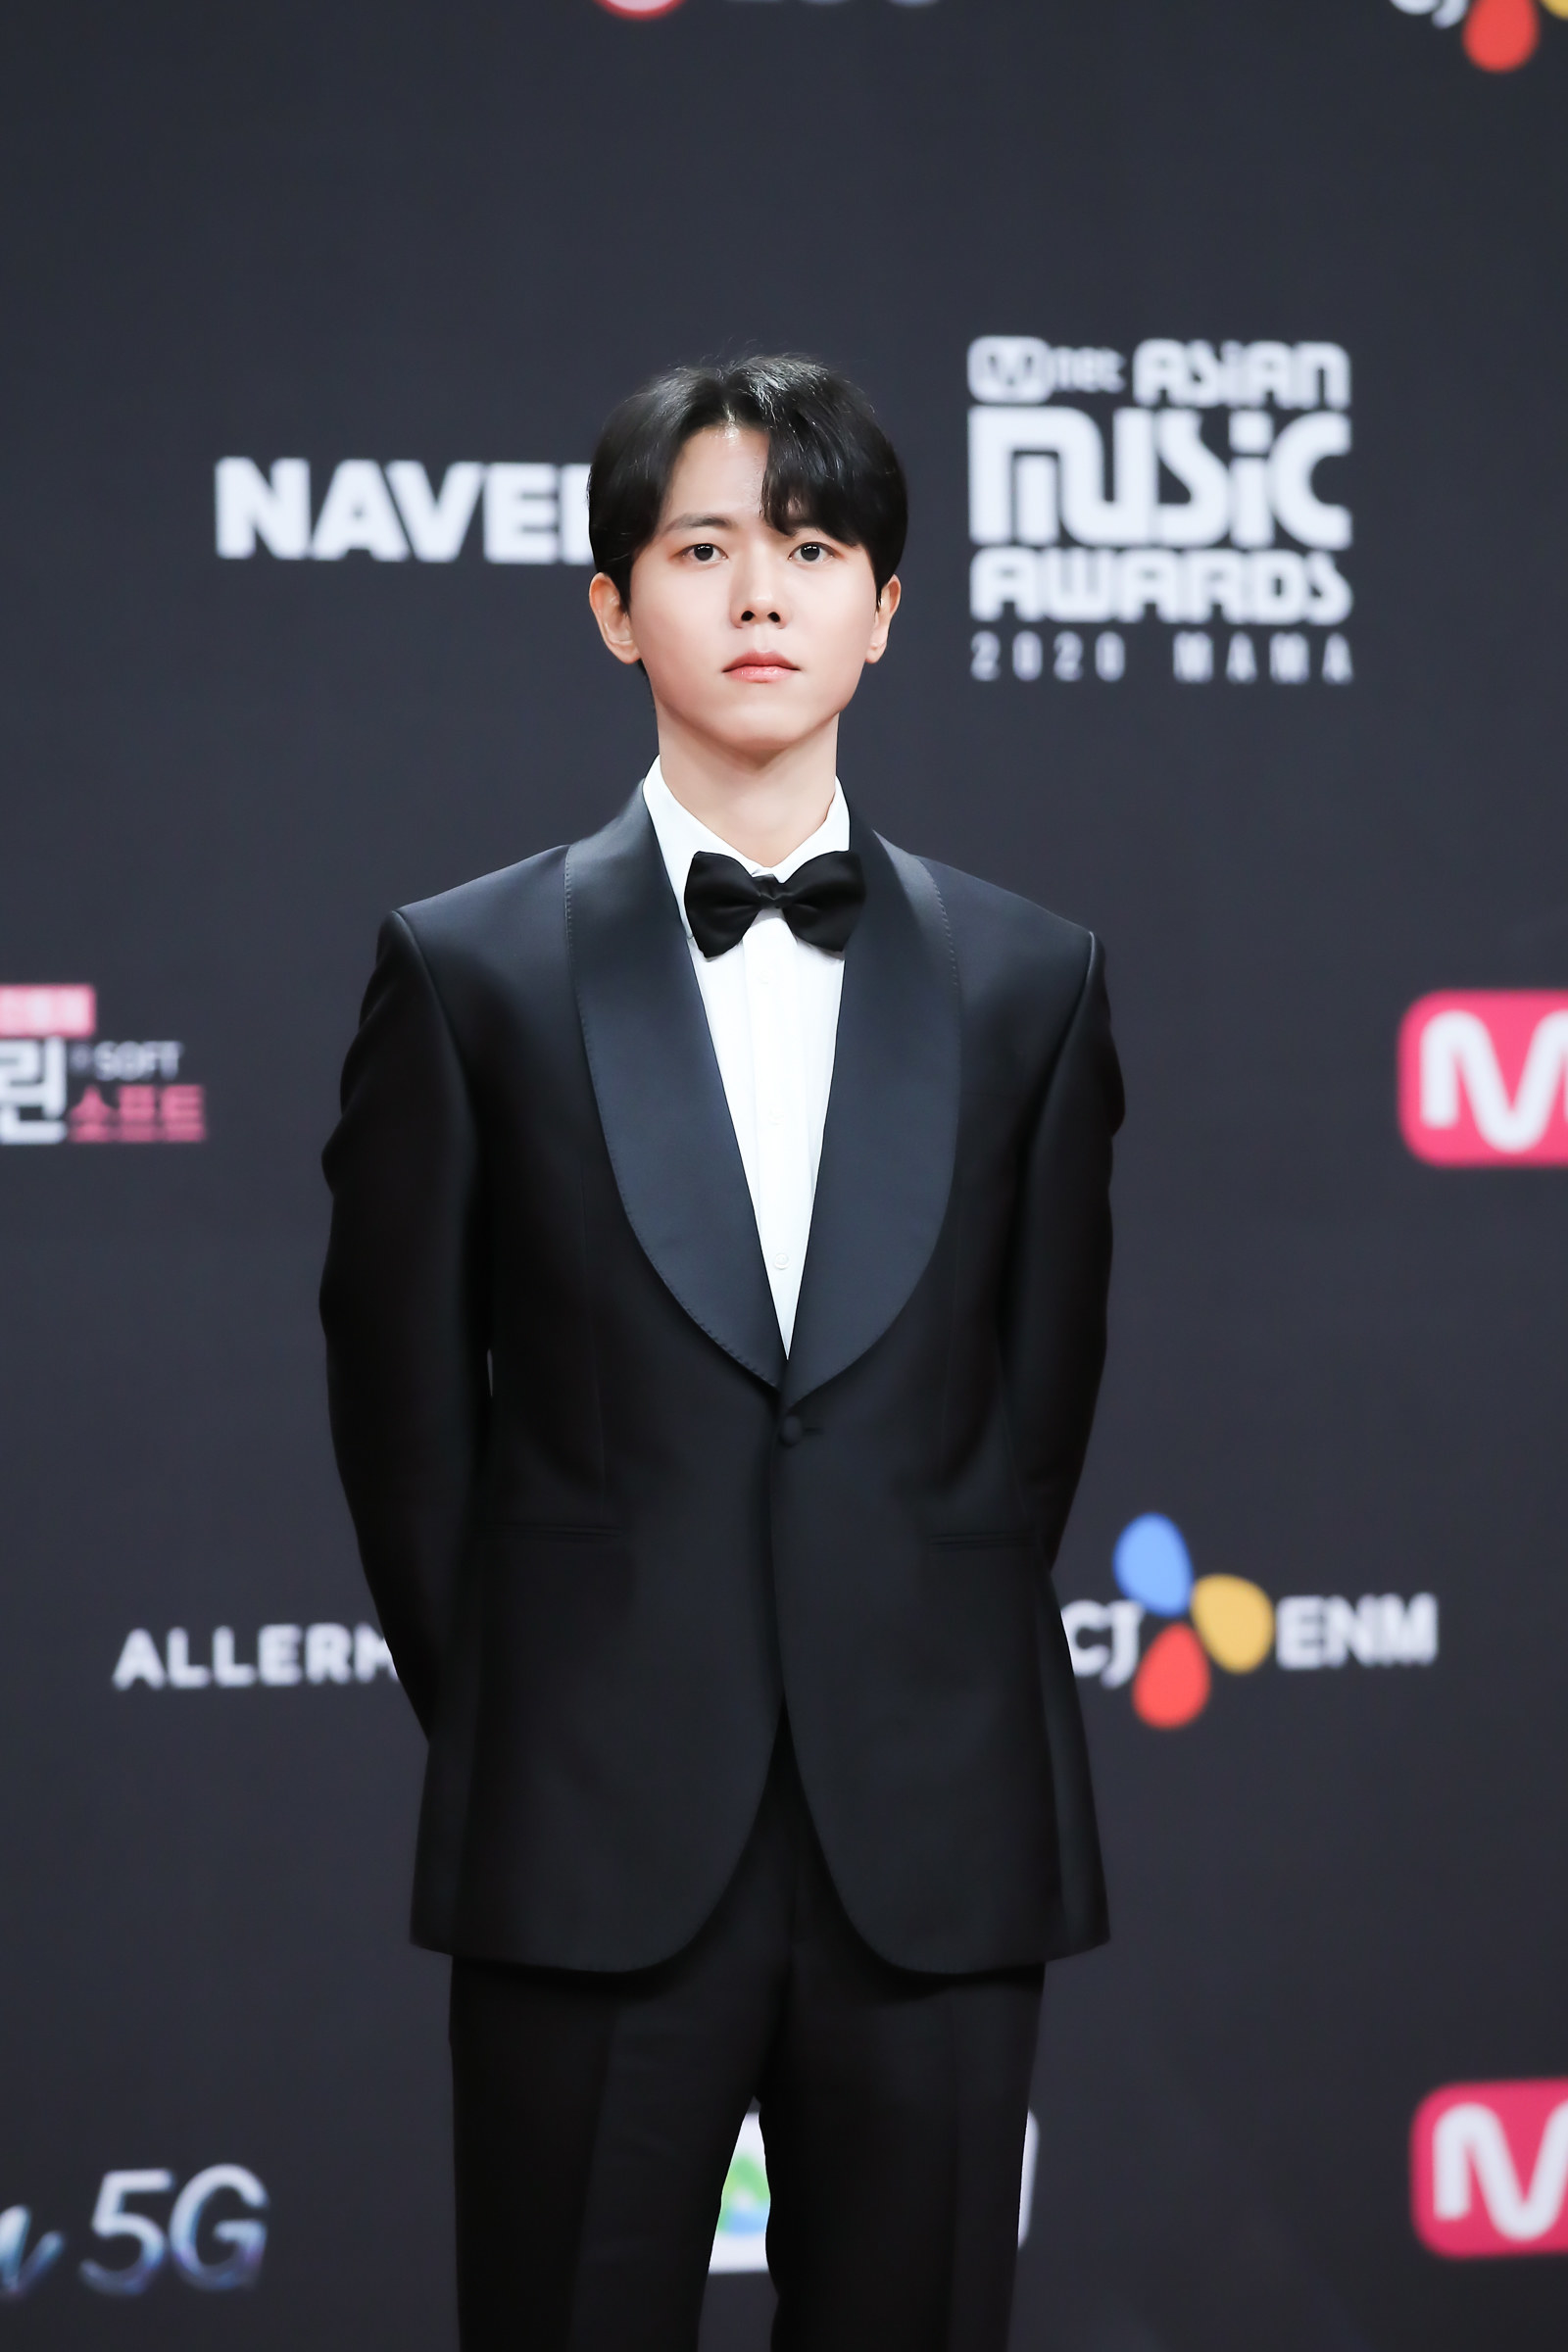 Joo Woo Jae wears a suit and bowtie  at the 2020 Mnet Asian Music Awards